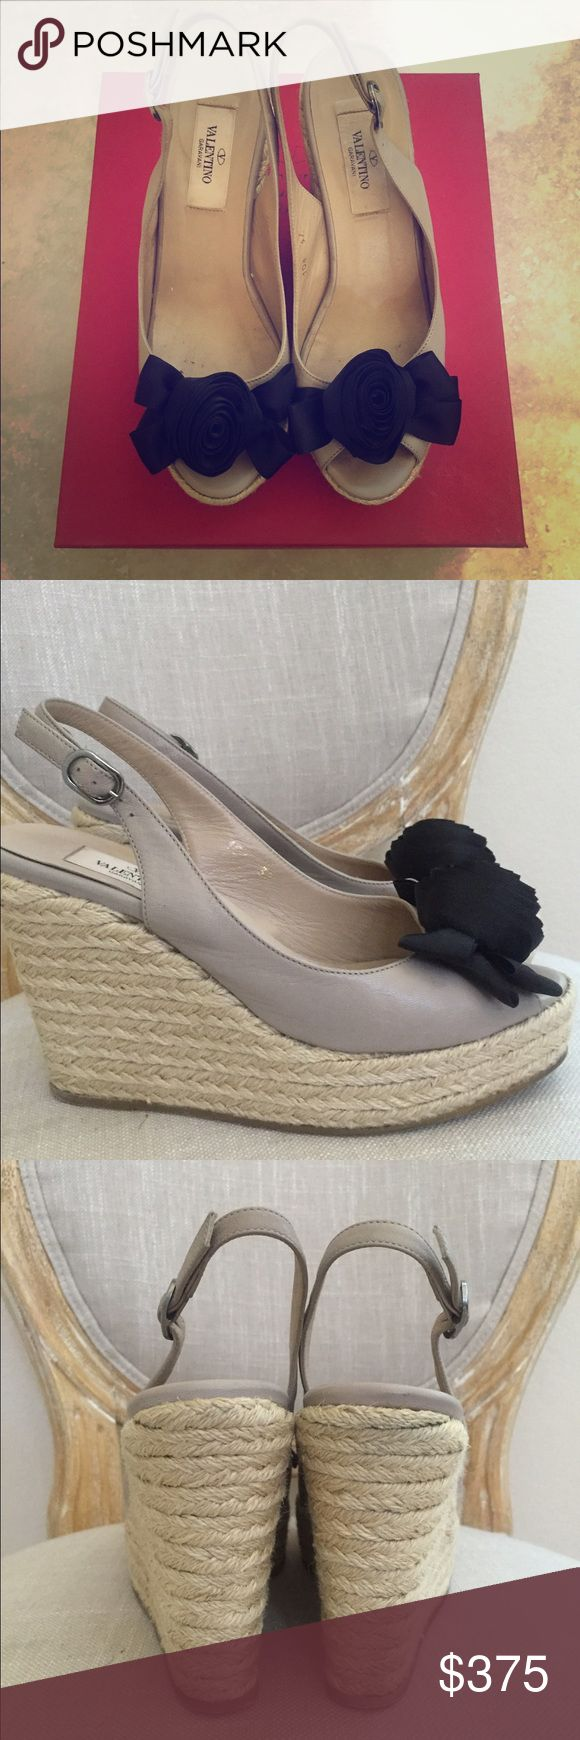 Valentino wedge Pre-loved wedges in excellent condition.  Super comfortable!  Nude leather with black flower.  Size 37.  Box included. Valentino Shoes Wedges